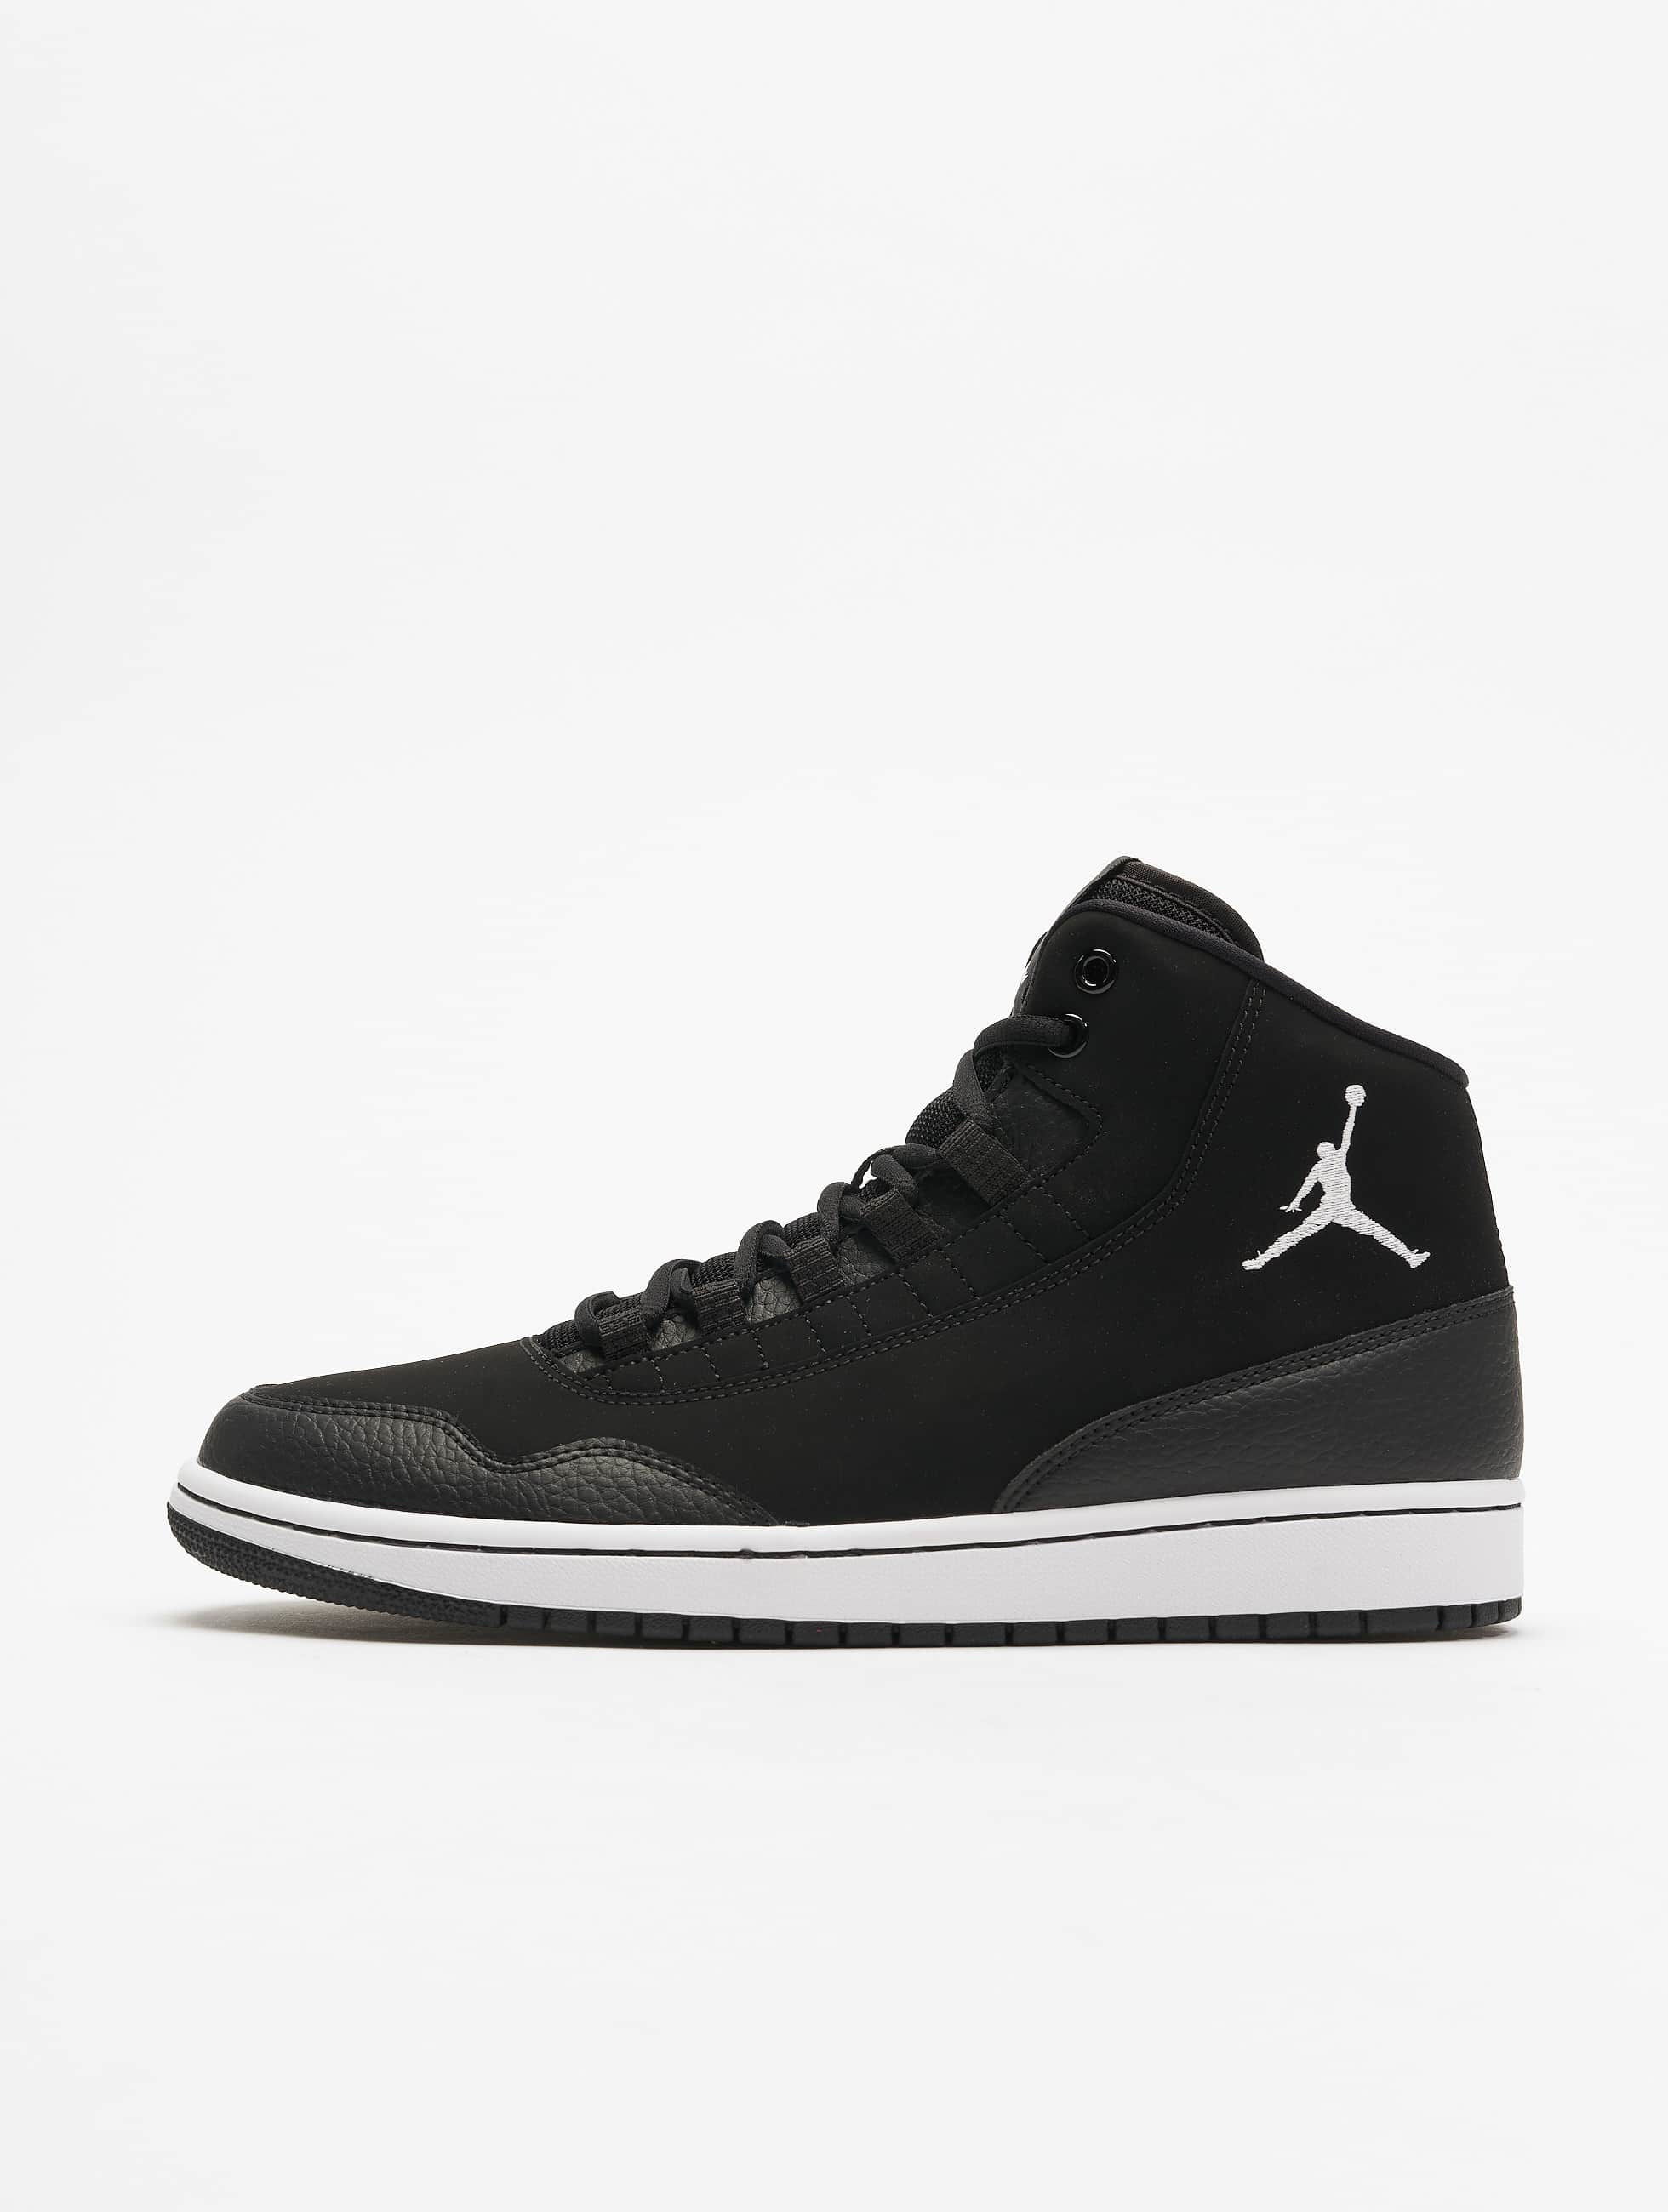 Jordan Sneakers Executive black